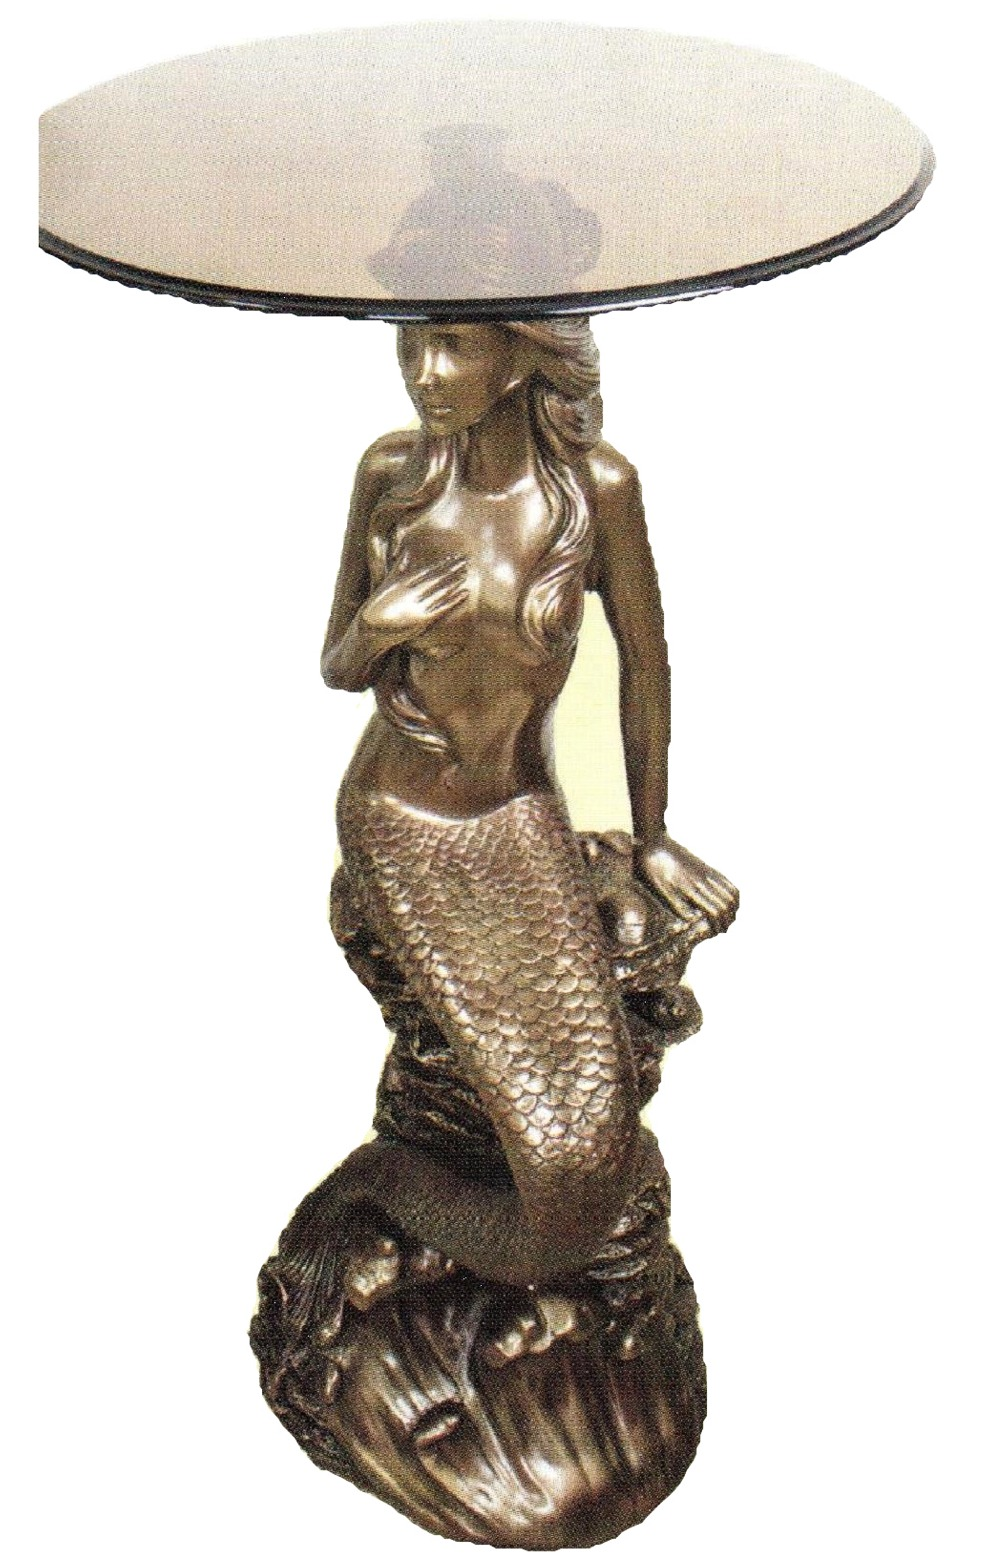 Mermaid Side Table